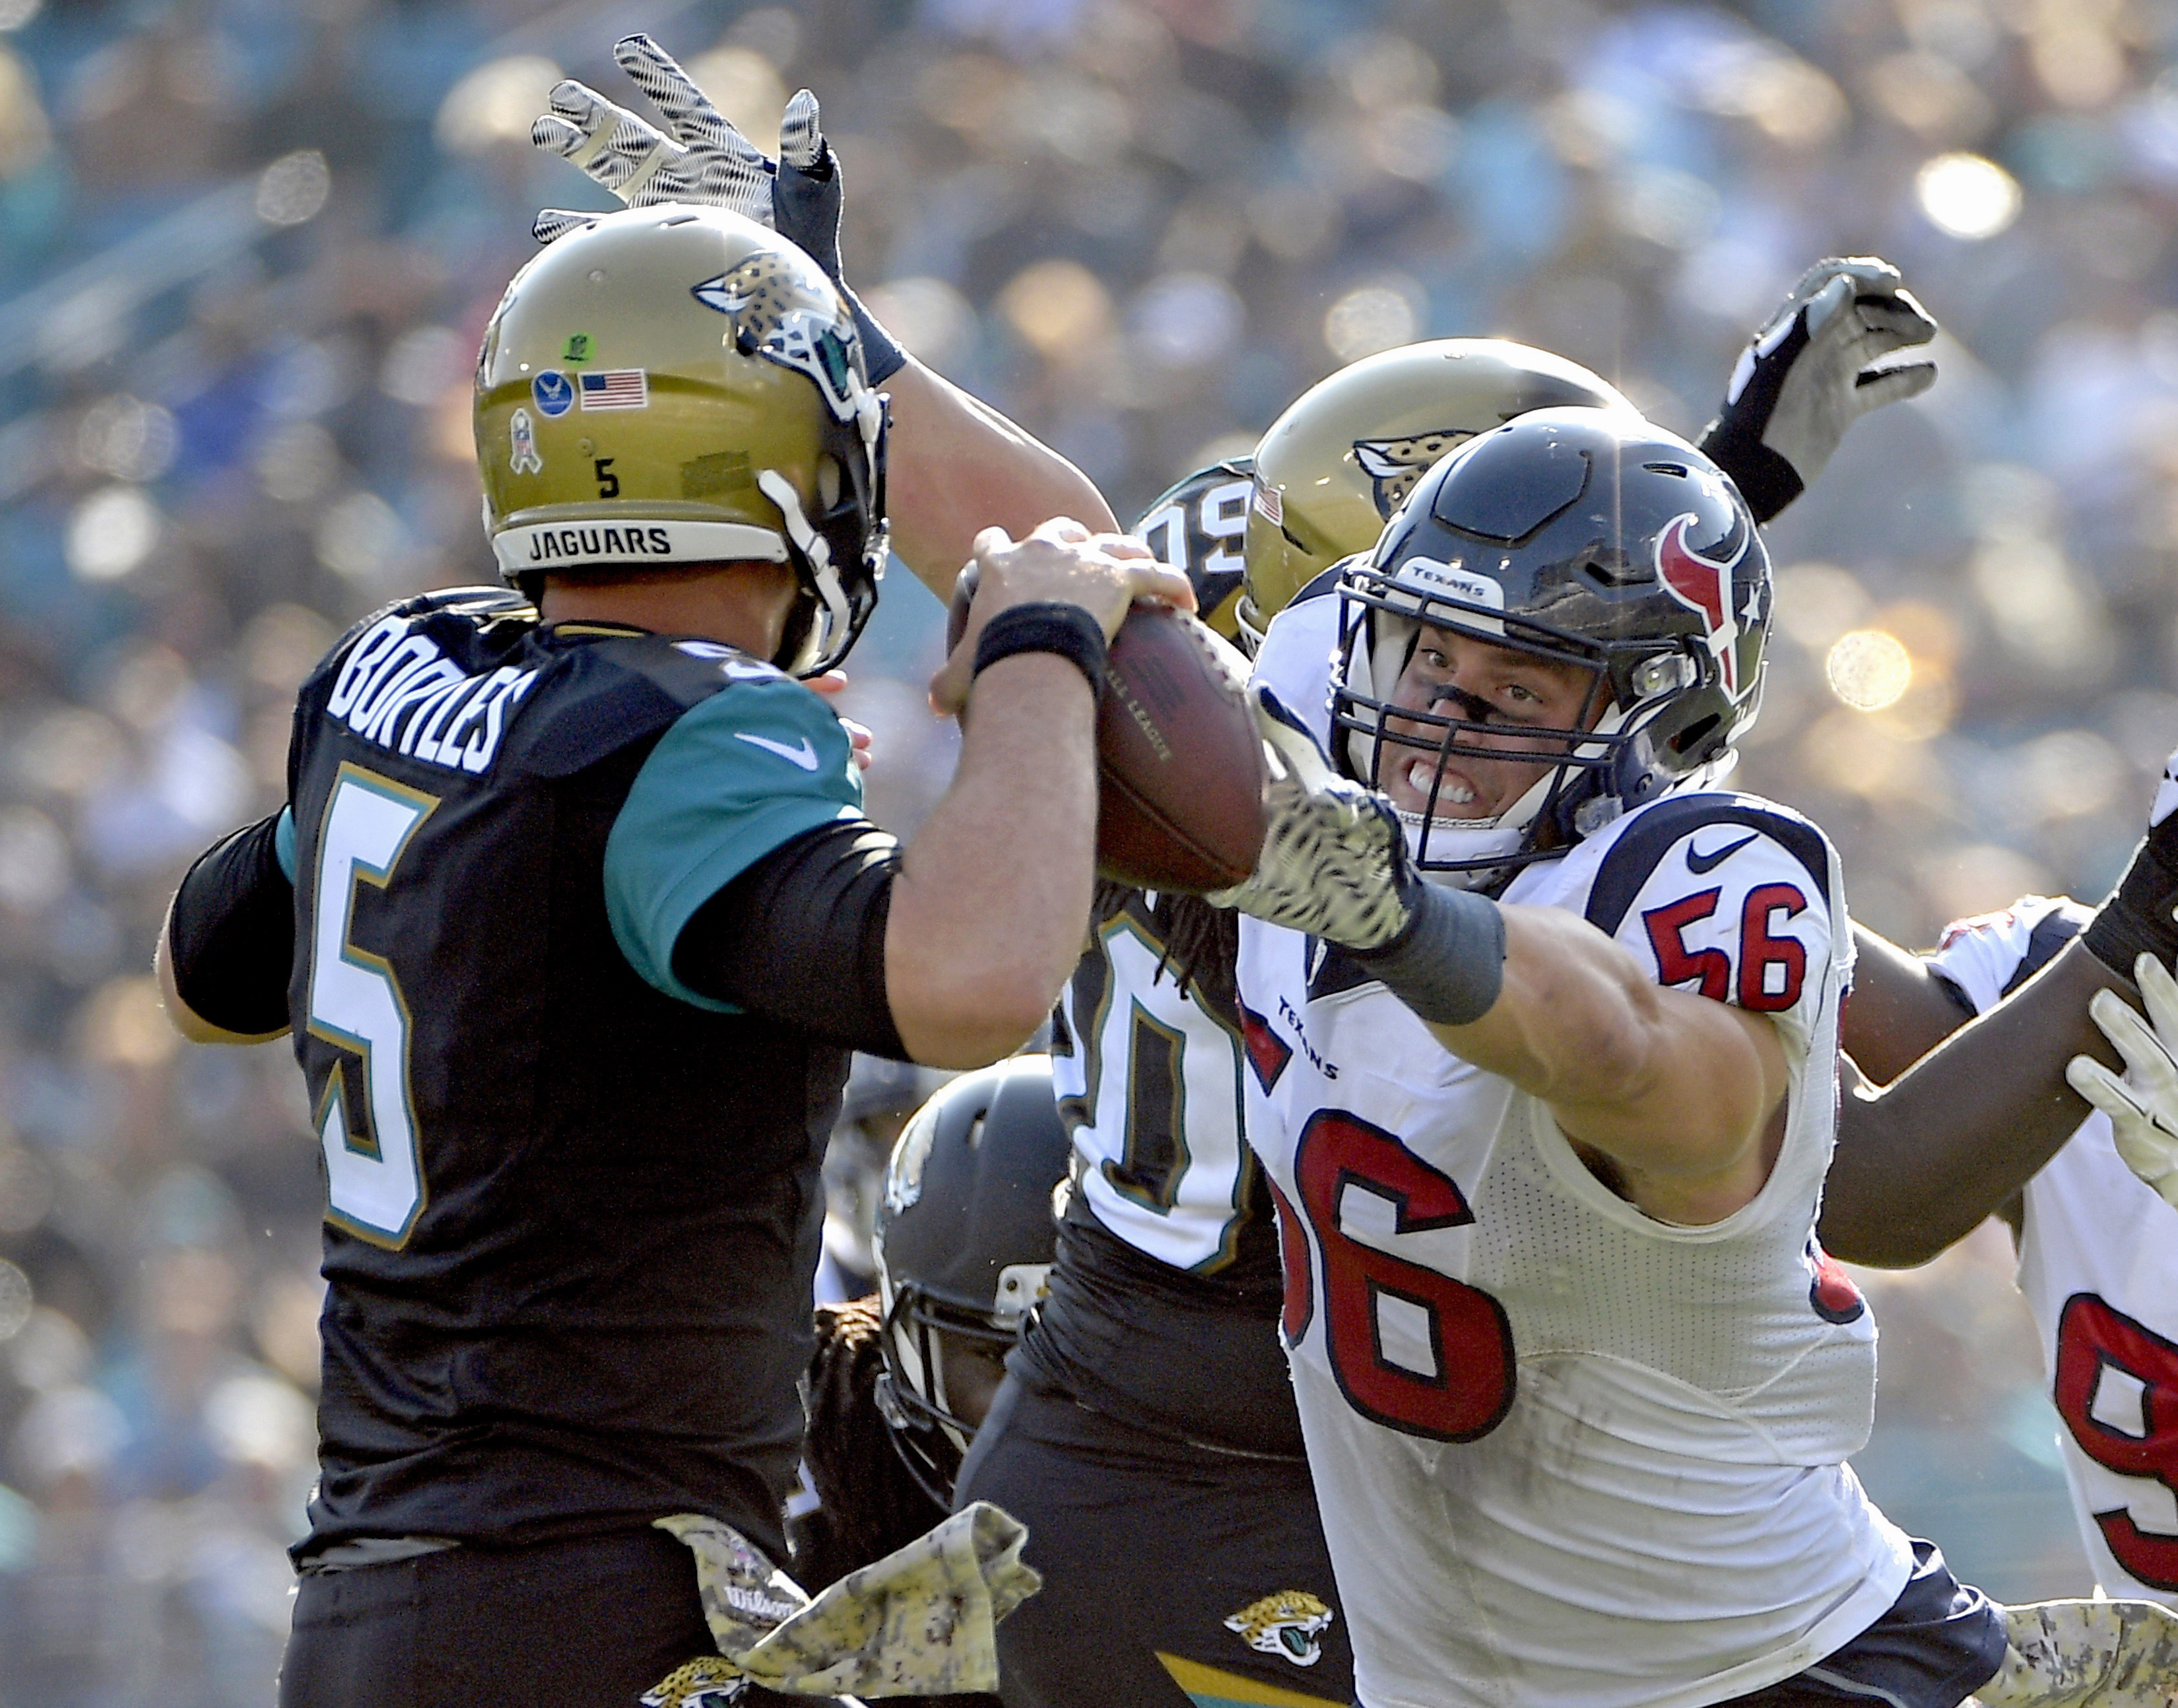 FILE - In this Nov. 13, 2016, file photo, Houston Texans inside linebacker Brian Cushing (56) pressures Jacksonville Jaguars quarterback Blake Bortles (5) as he throws a pass during the second half of an NFL football game, in Jacksonville, Fla Cushing is